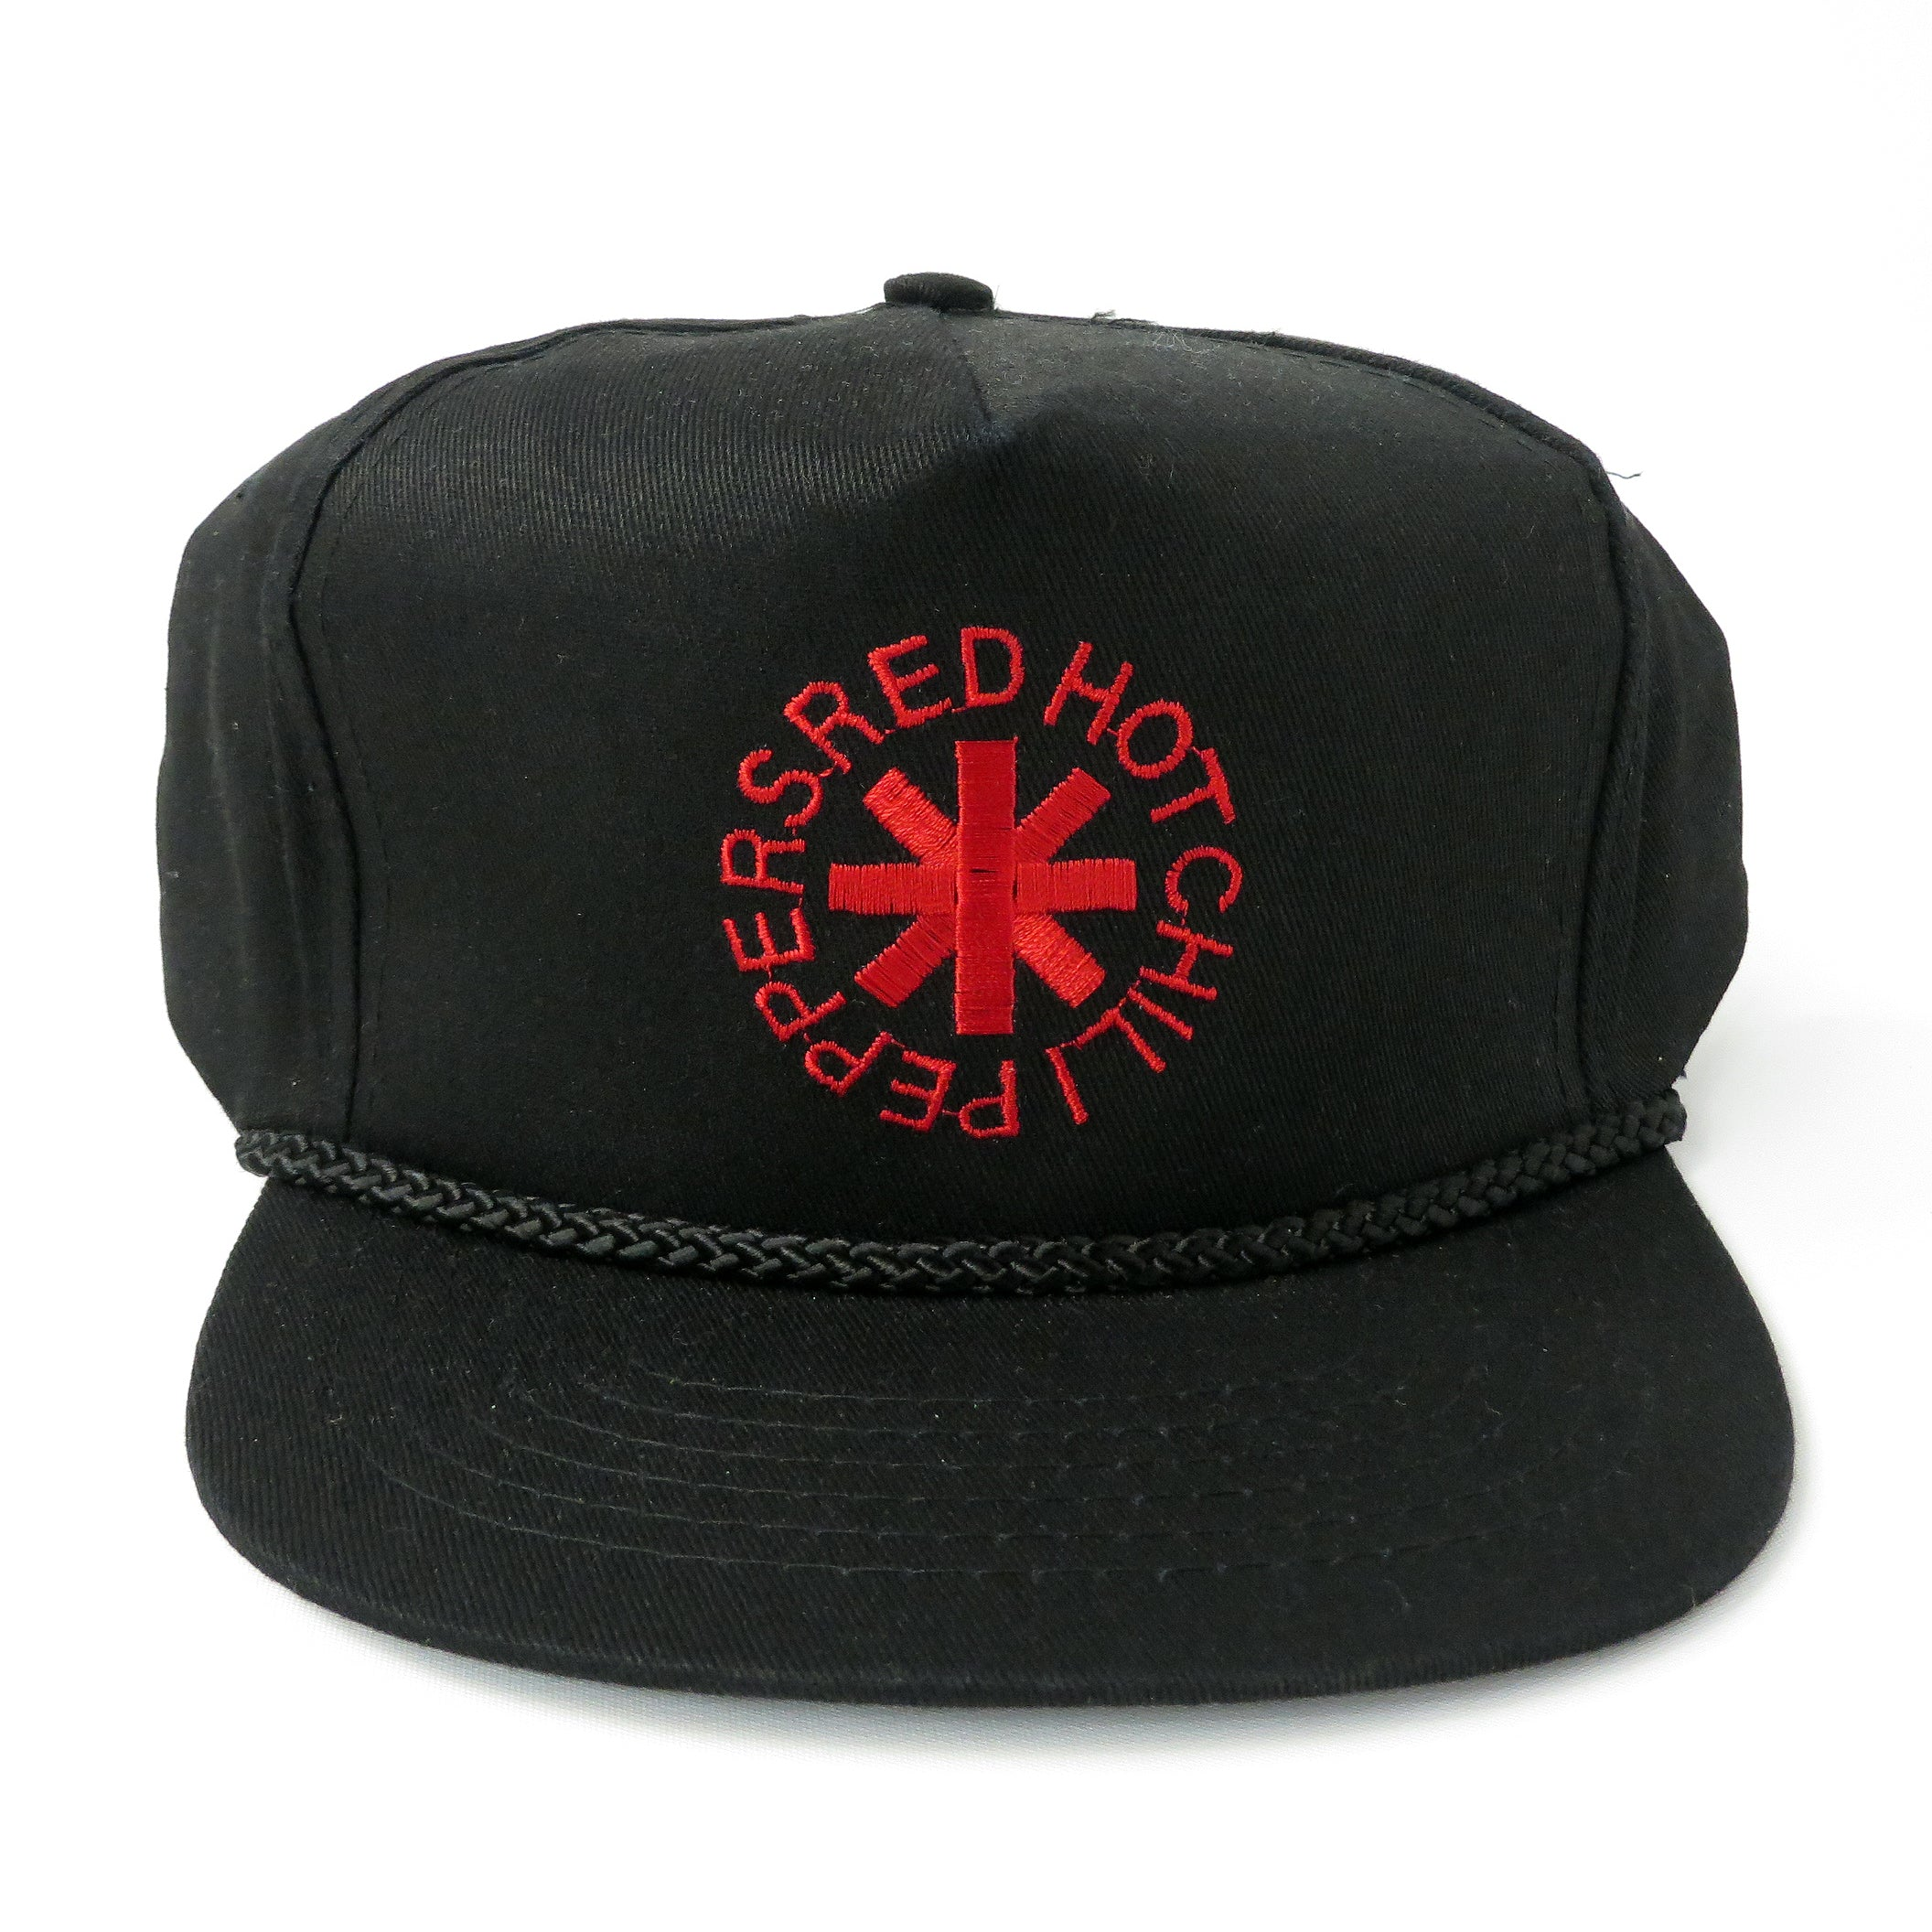 Vintage Red Hot Chili Peppers Snapback Hat